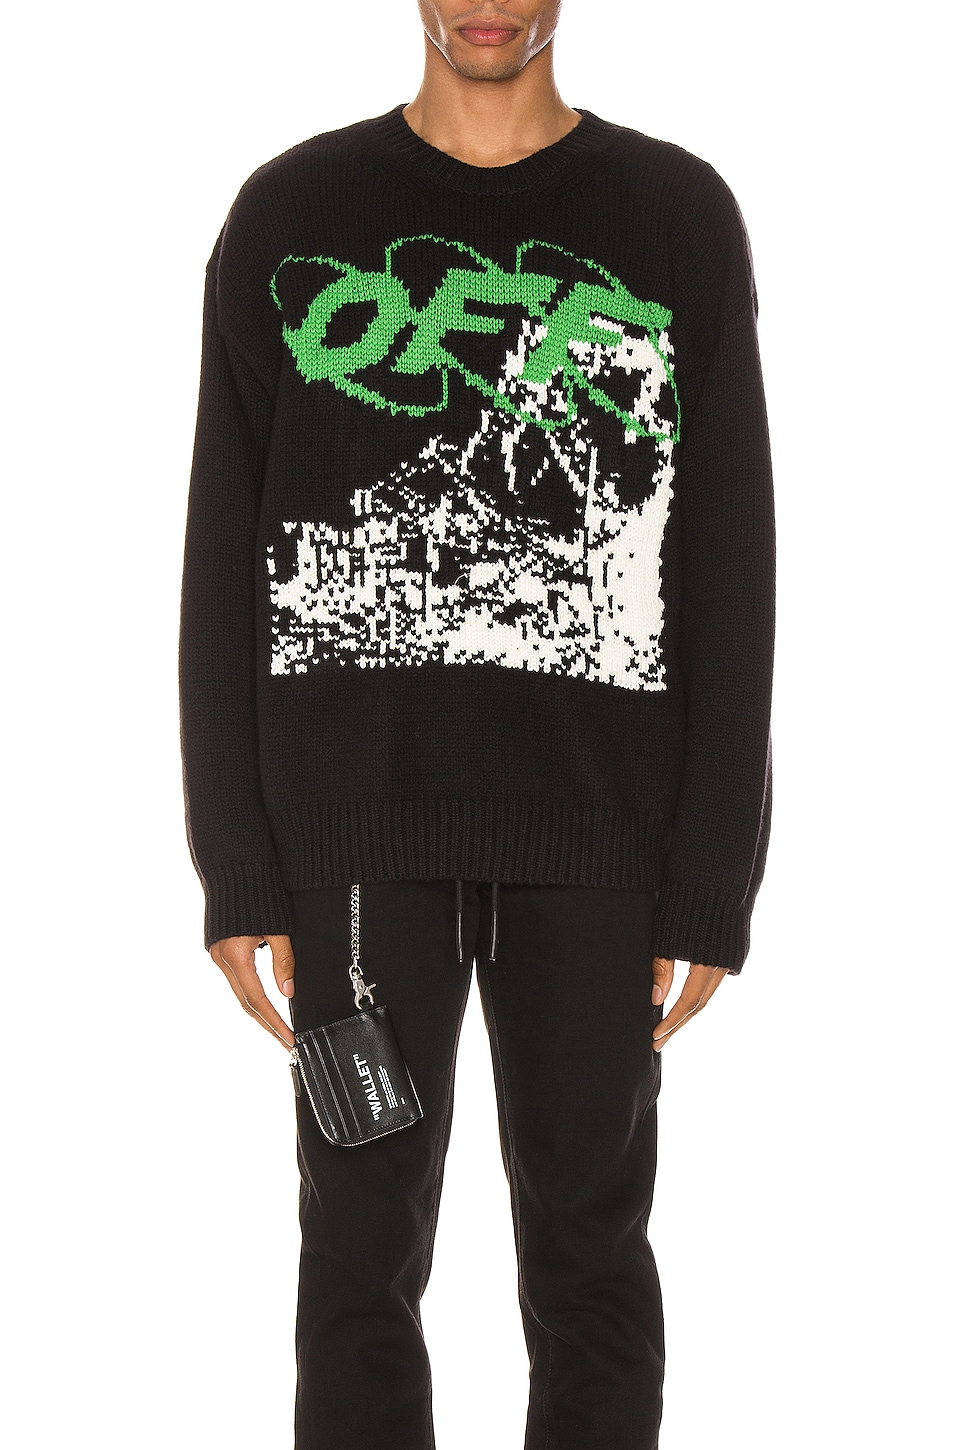 OFF-WHITE Ruined Factory Knit Crewneck en Black & White